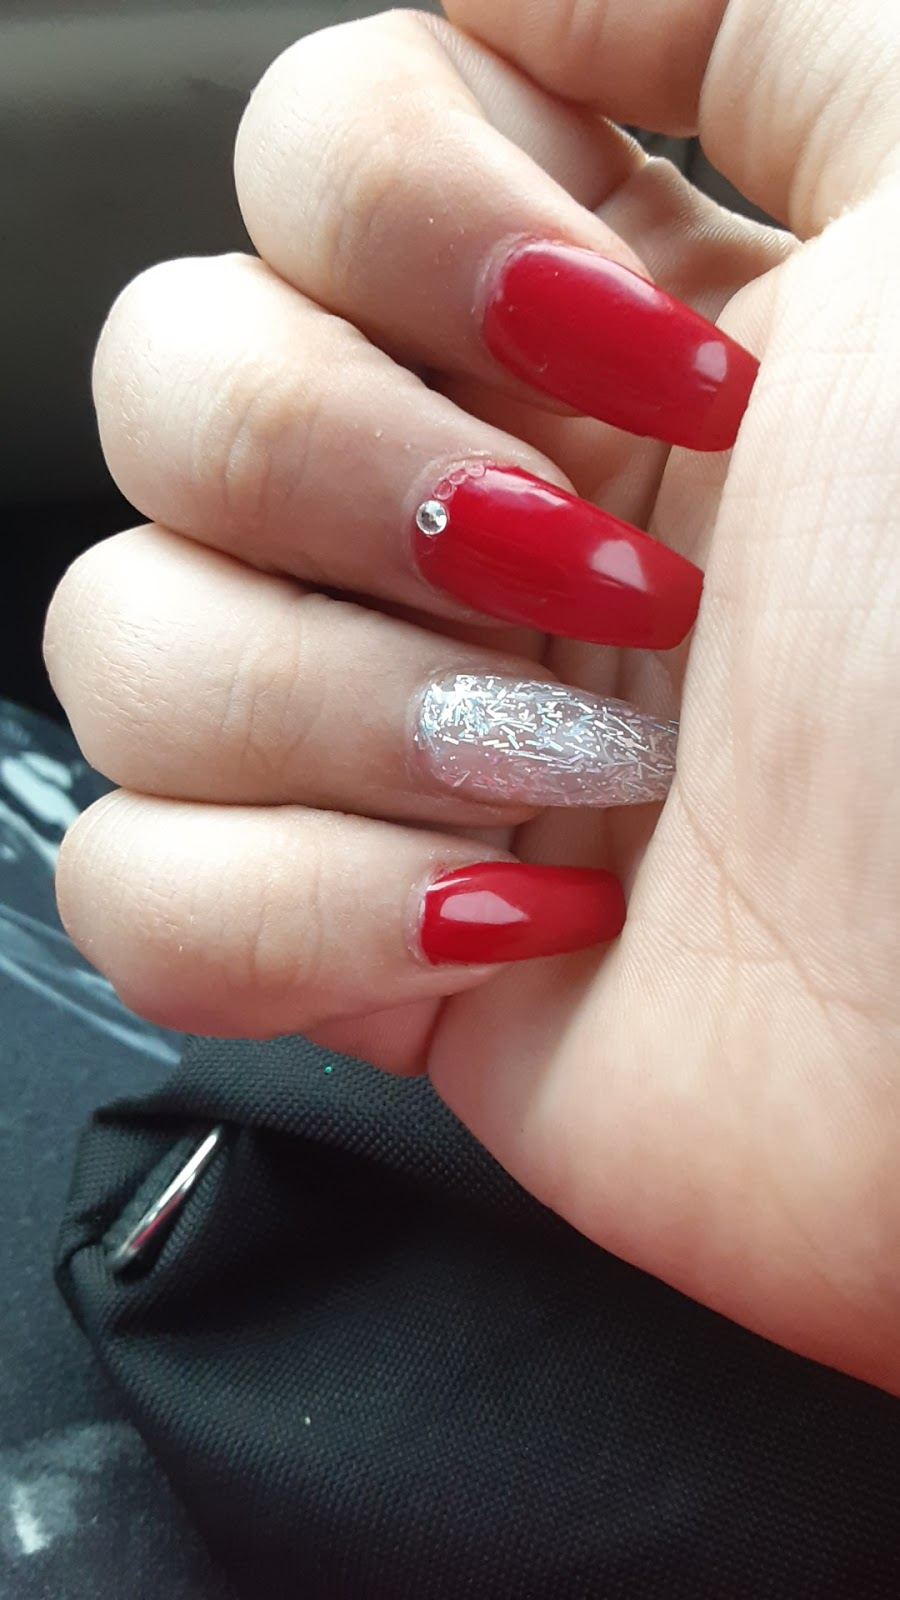 Knightdale Day Spa Nails - spa  | Photo 4 of 7 | Address: 4001 Widewaters Parkway # D, Knightdale, NC 27545, USA | Phone: (919) 261-9851